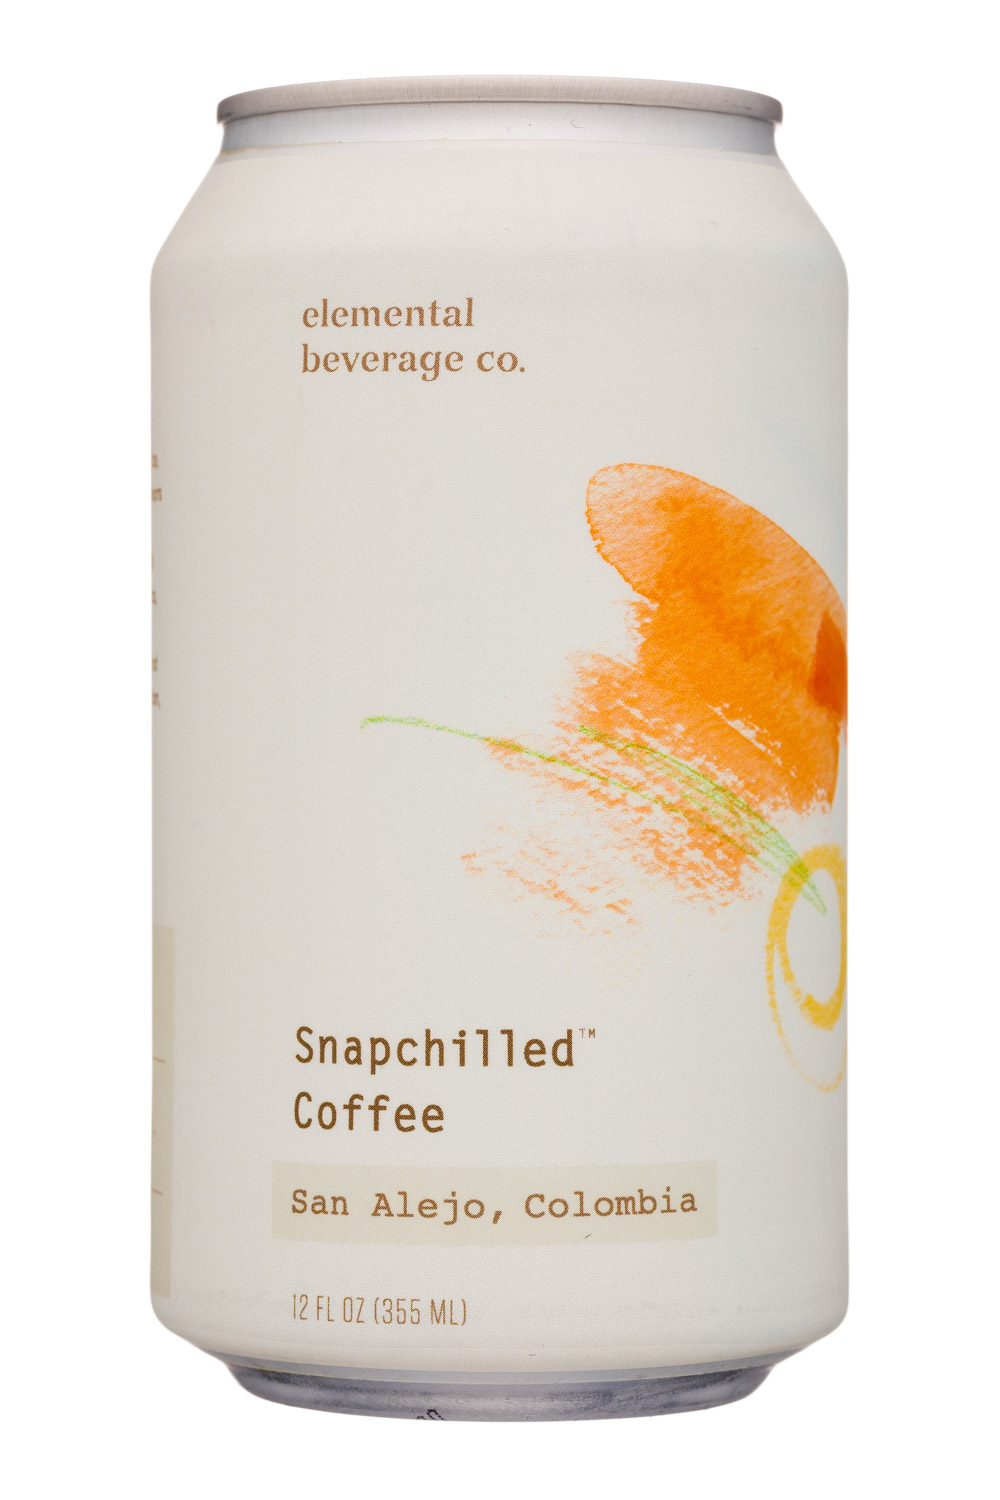 Snapchilled Coffee - San Alejo, Colombia